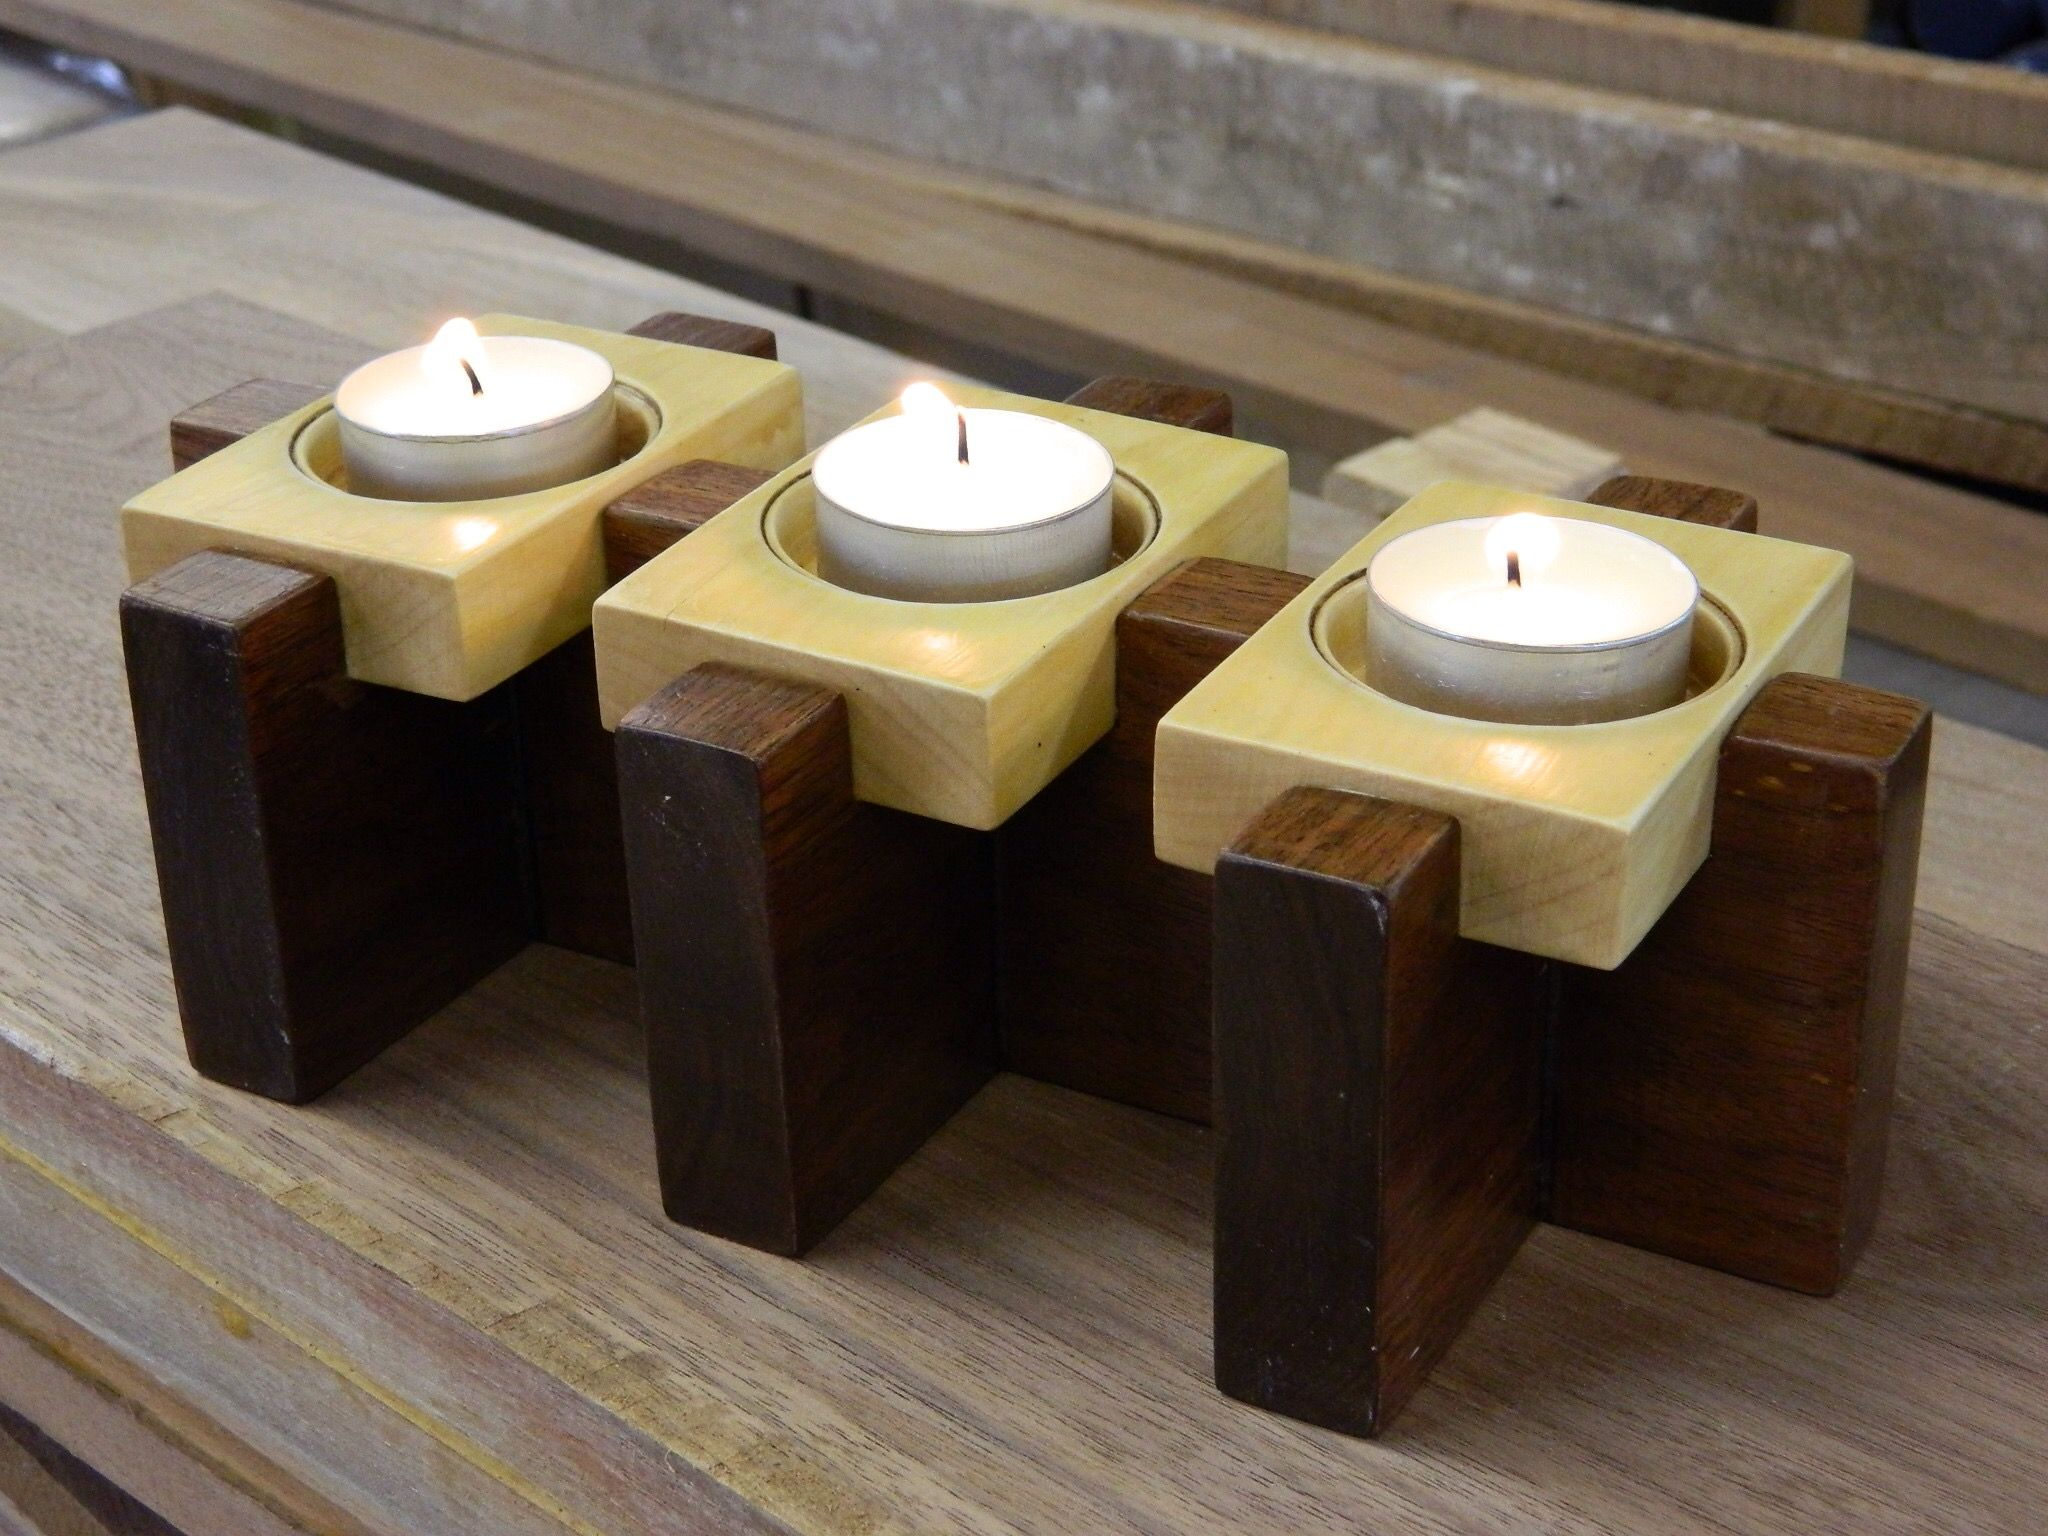 Walnut And Maple Candle Holder 2 Tea Candle Holders Wooden Candle Stand Wooden Candle Holders